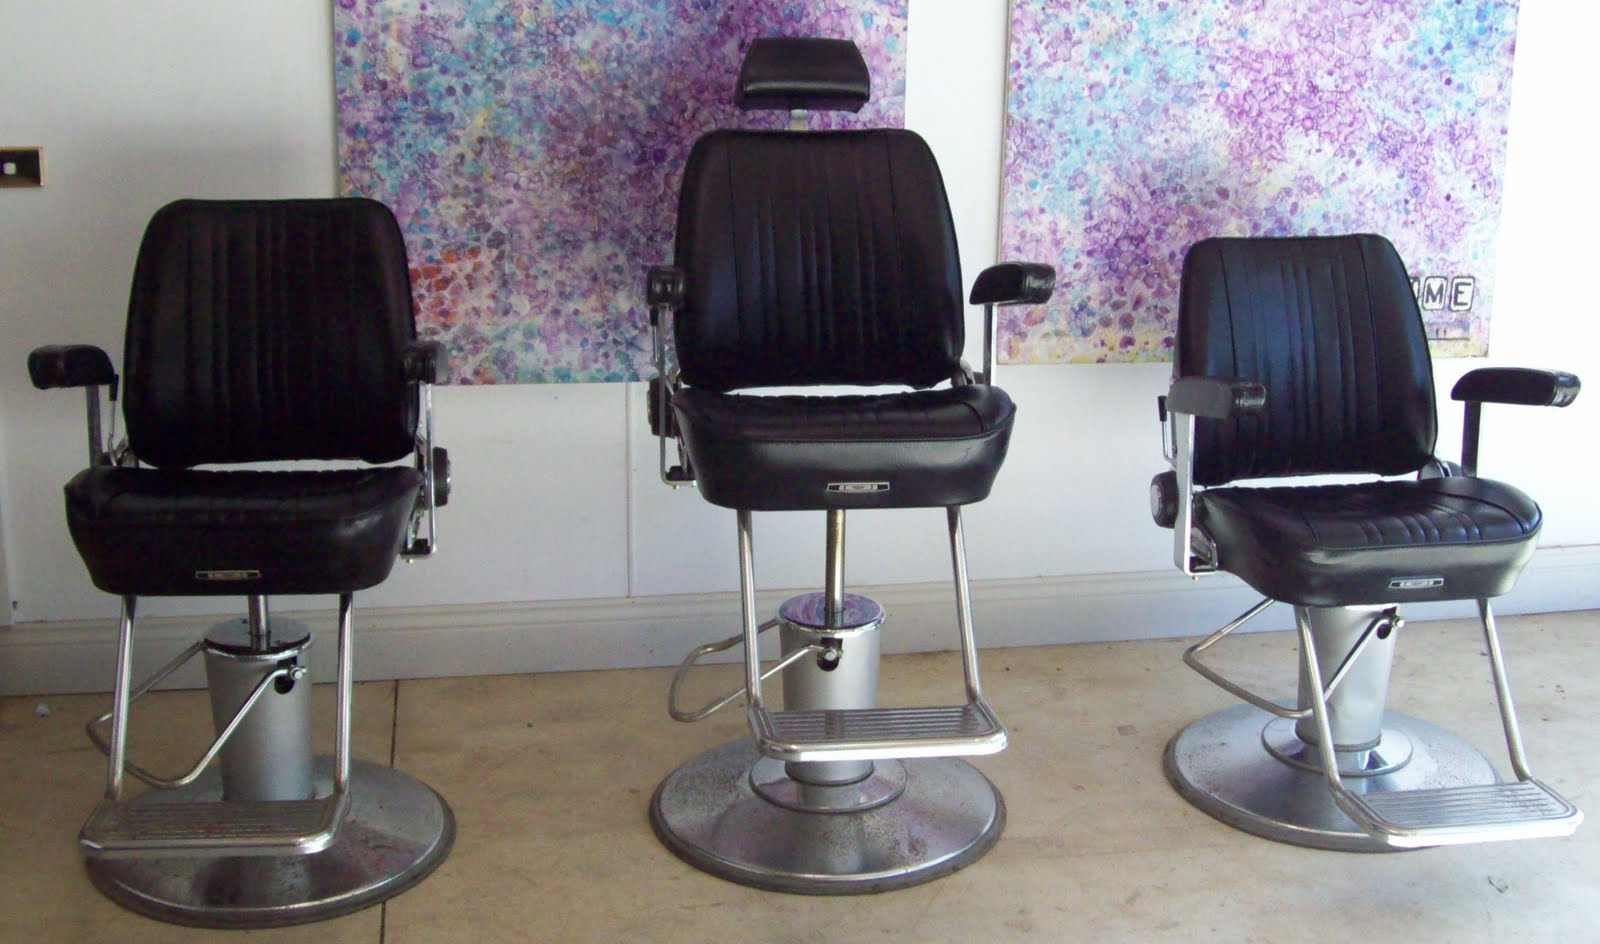 Old School Barber Chair Folding Camp Parts Vintage And Retro Things 43 More For Sale Chairs